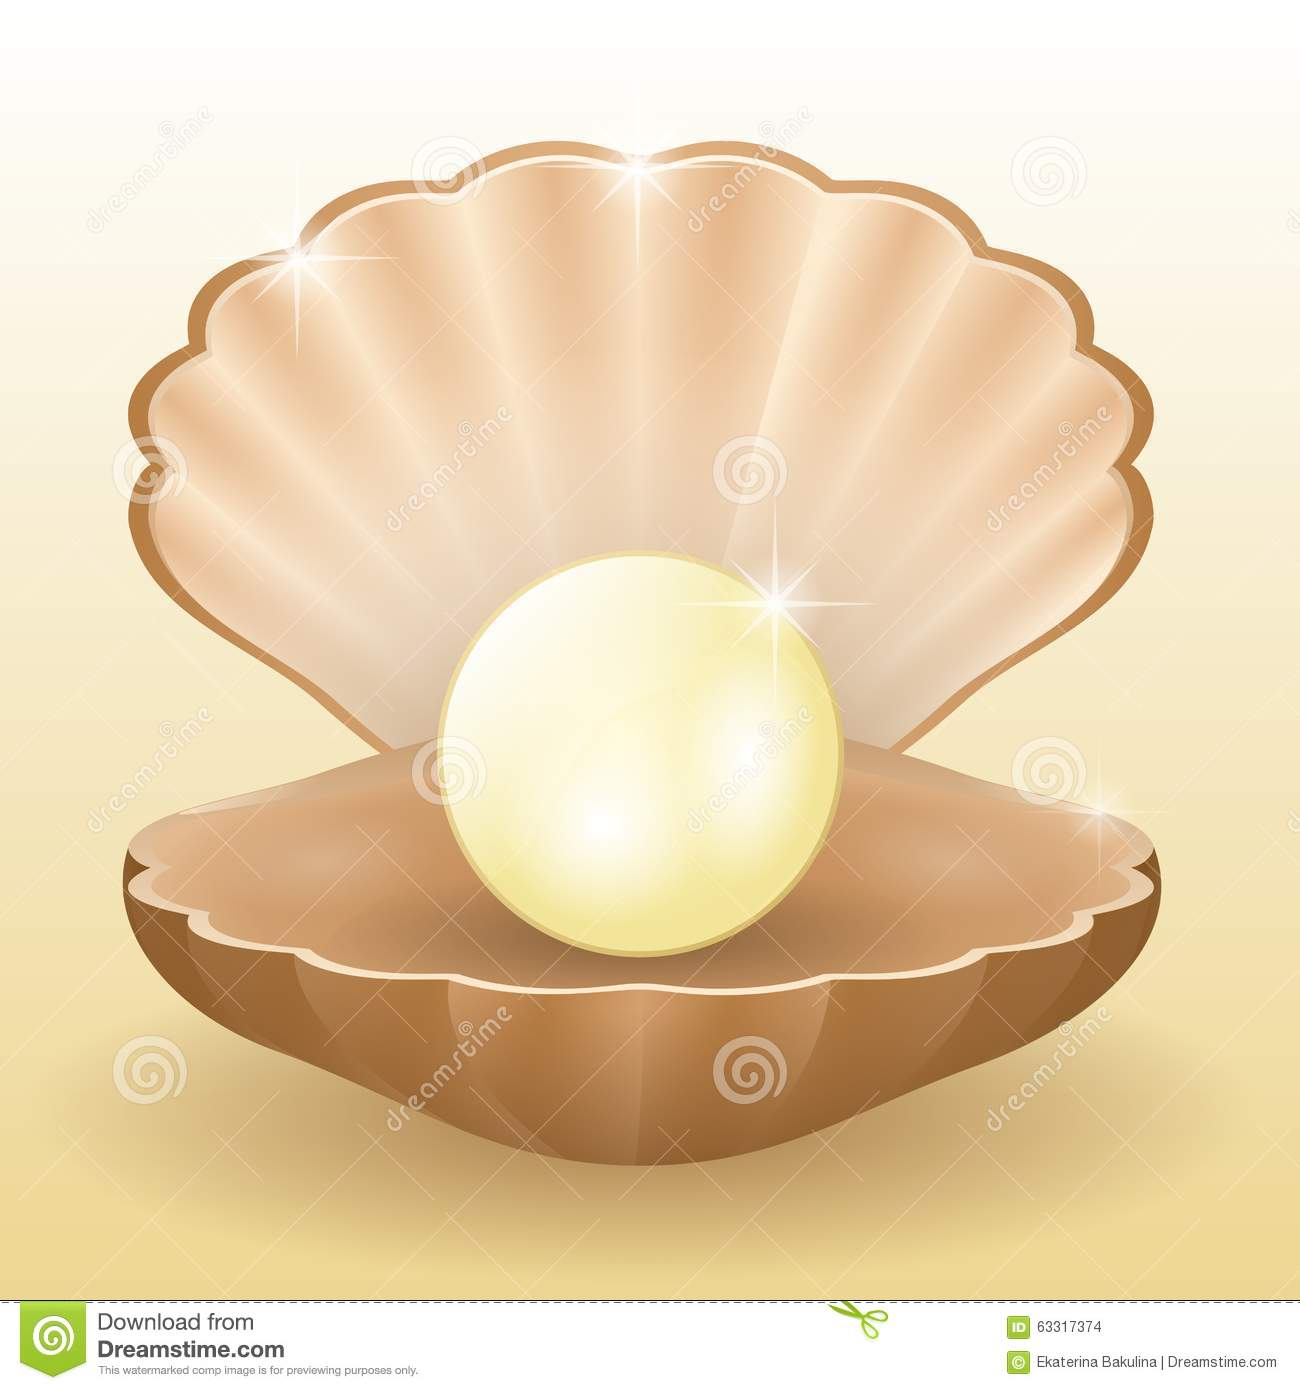 Shining White Pearl In The Shell Stock Vector - Image ...